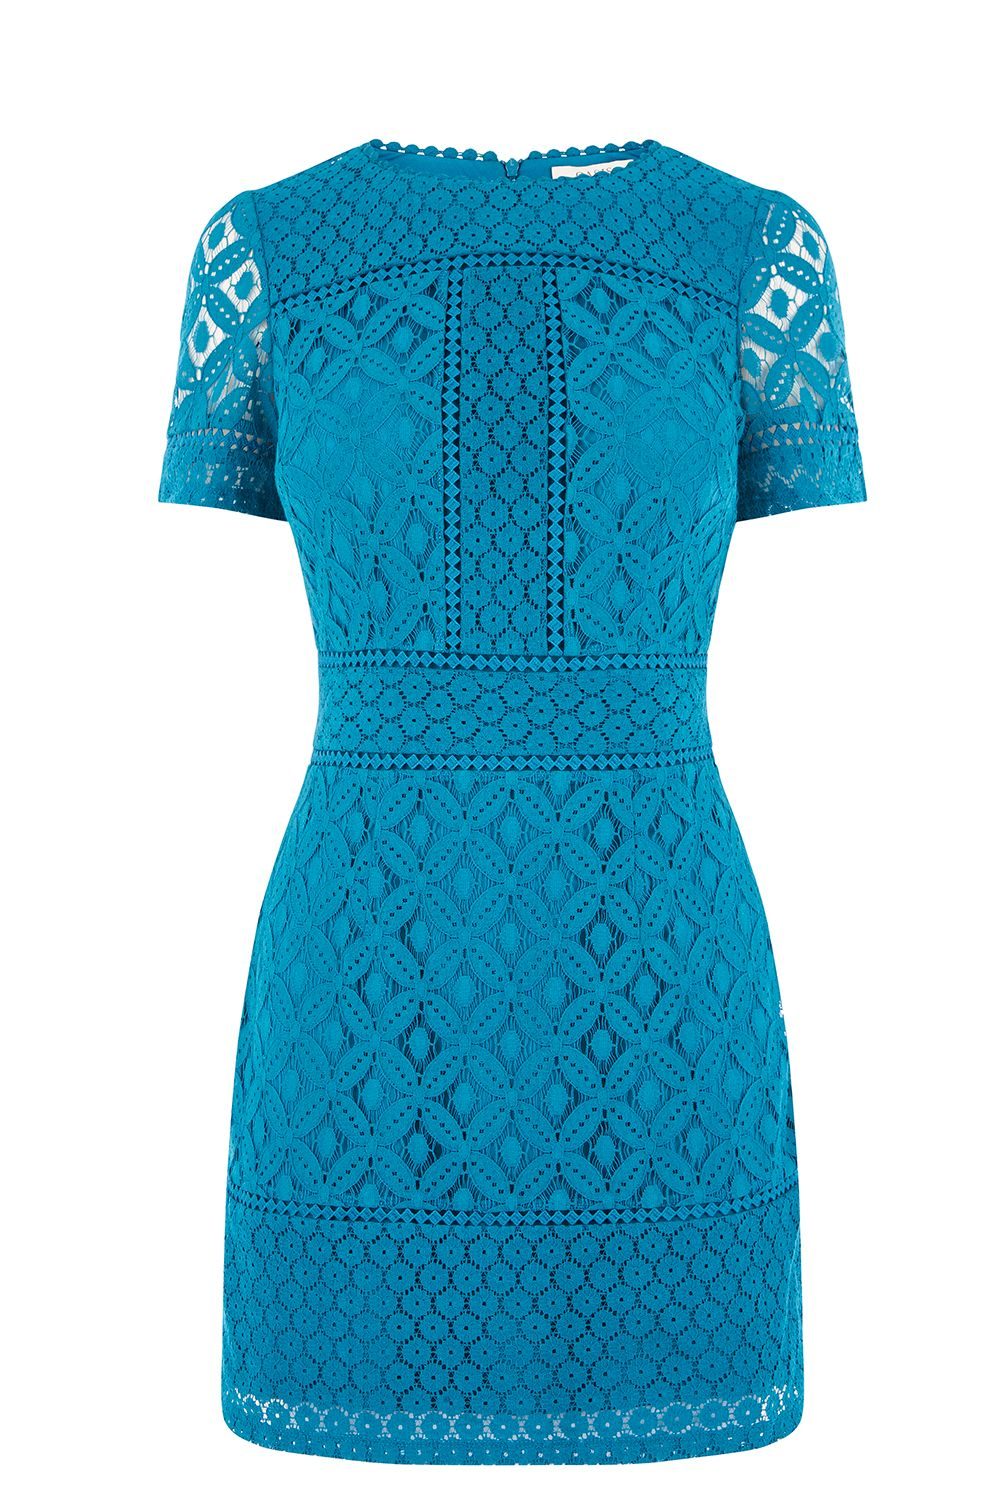 Oasis SHORT ISLA LACE SHIFT DRESS, Turquoise